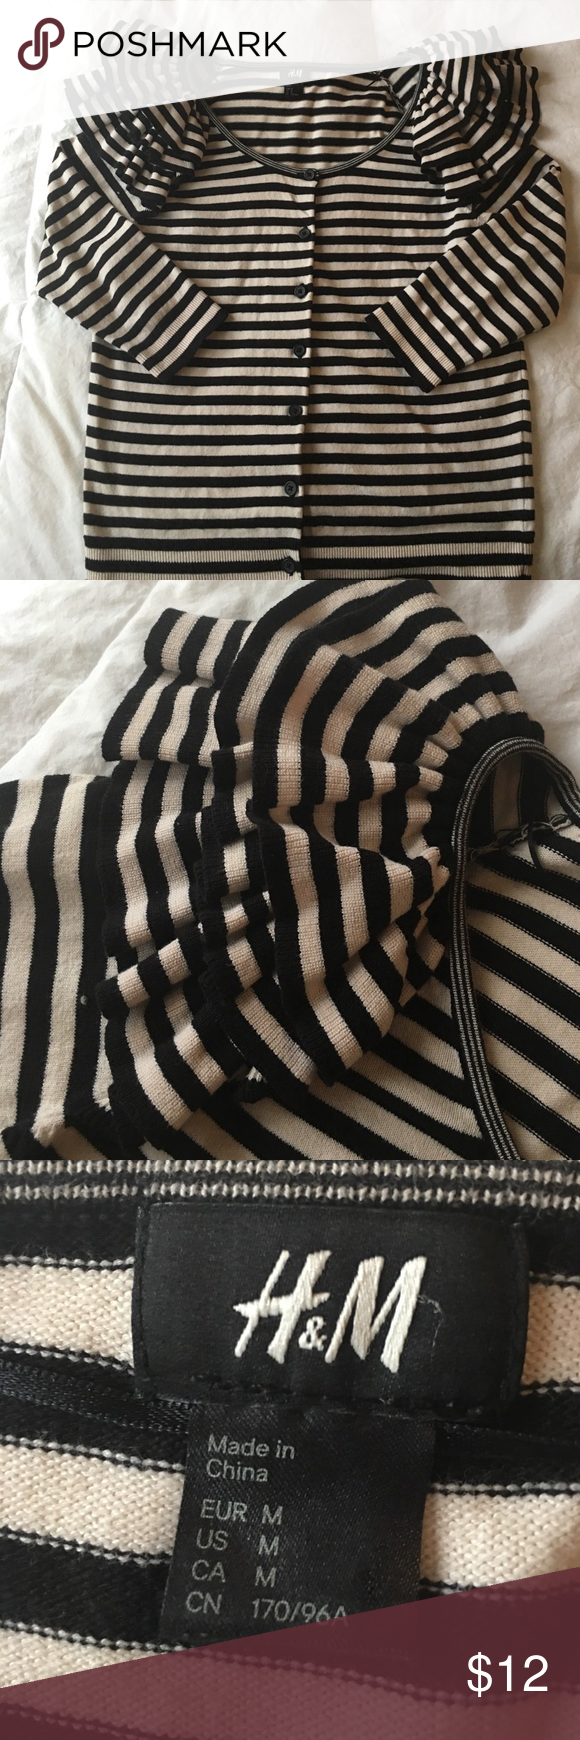 H&M stripped cardigan Black and cream colored stripped cardigan with ruffles at the shoulders. Three quarter length sleeves. Cute with boyfriend jeans and some flats. In excellent used condition. H&M Sweaters Cardigans